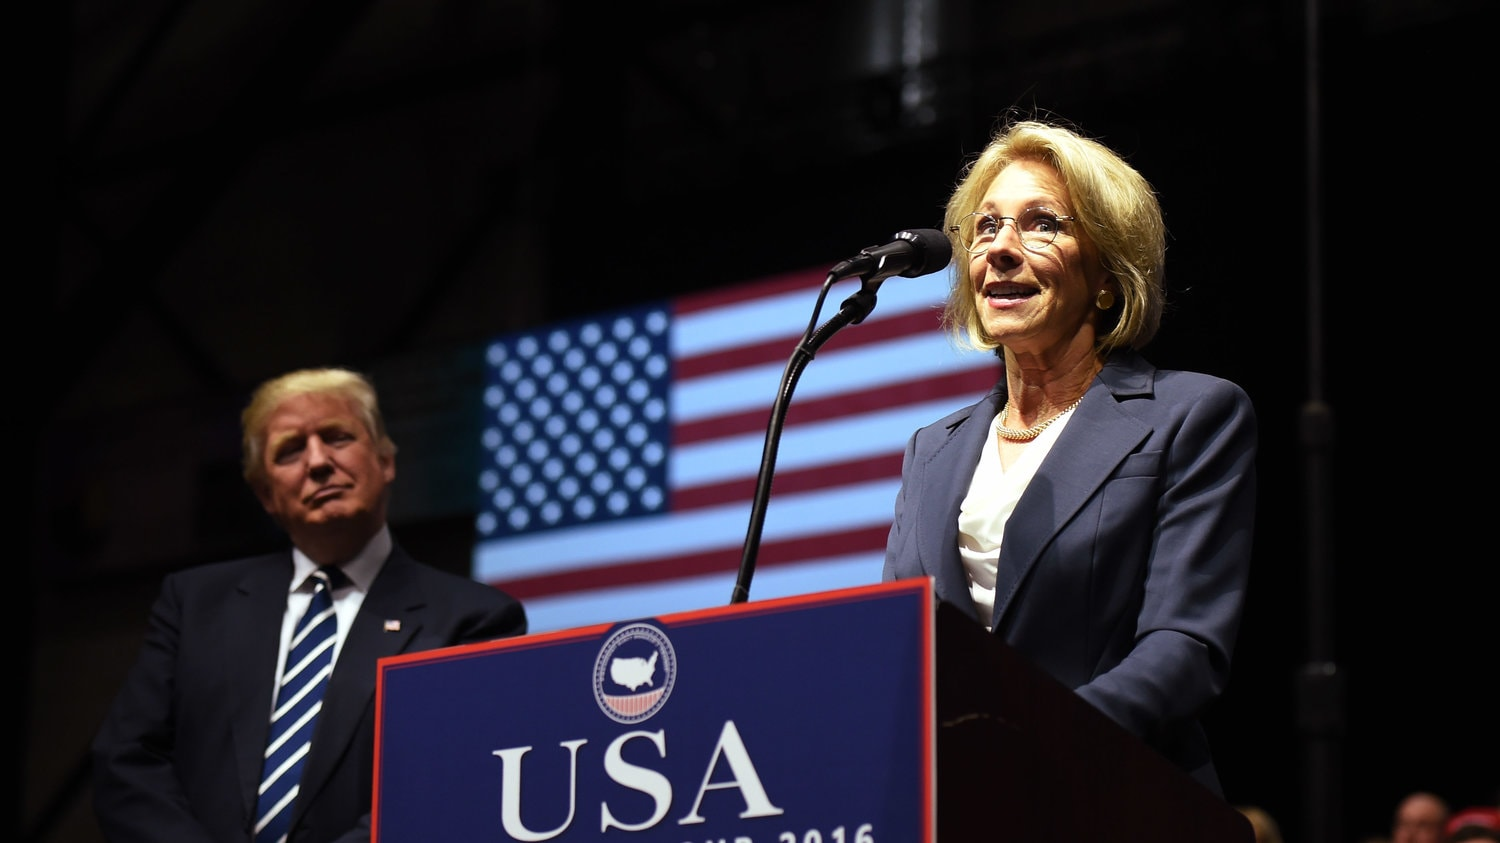 Vice President Mike Pence broke the 50-50 stalemate in the Senate, making Betsy DeVos the next education secretary.